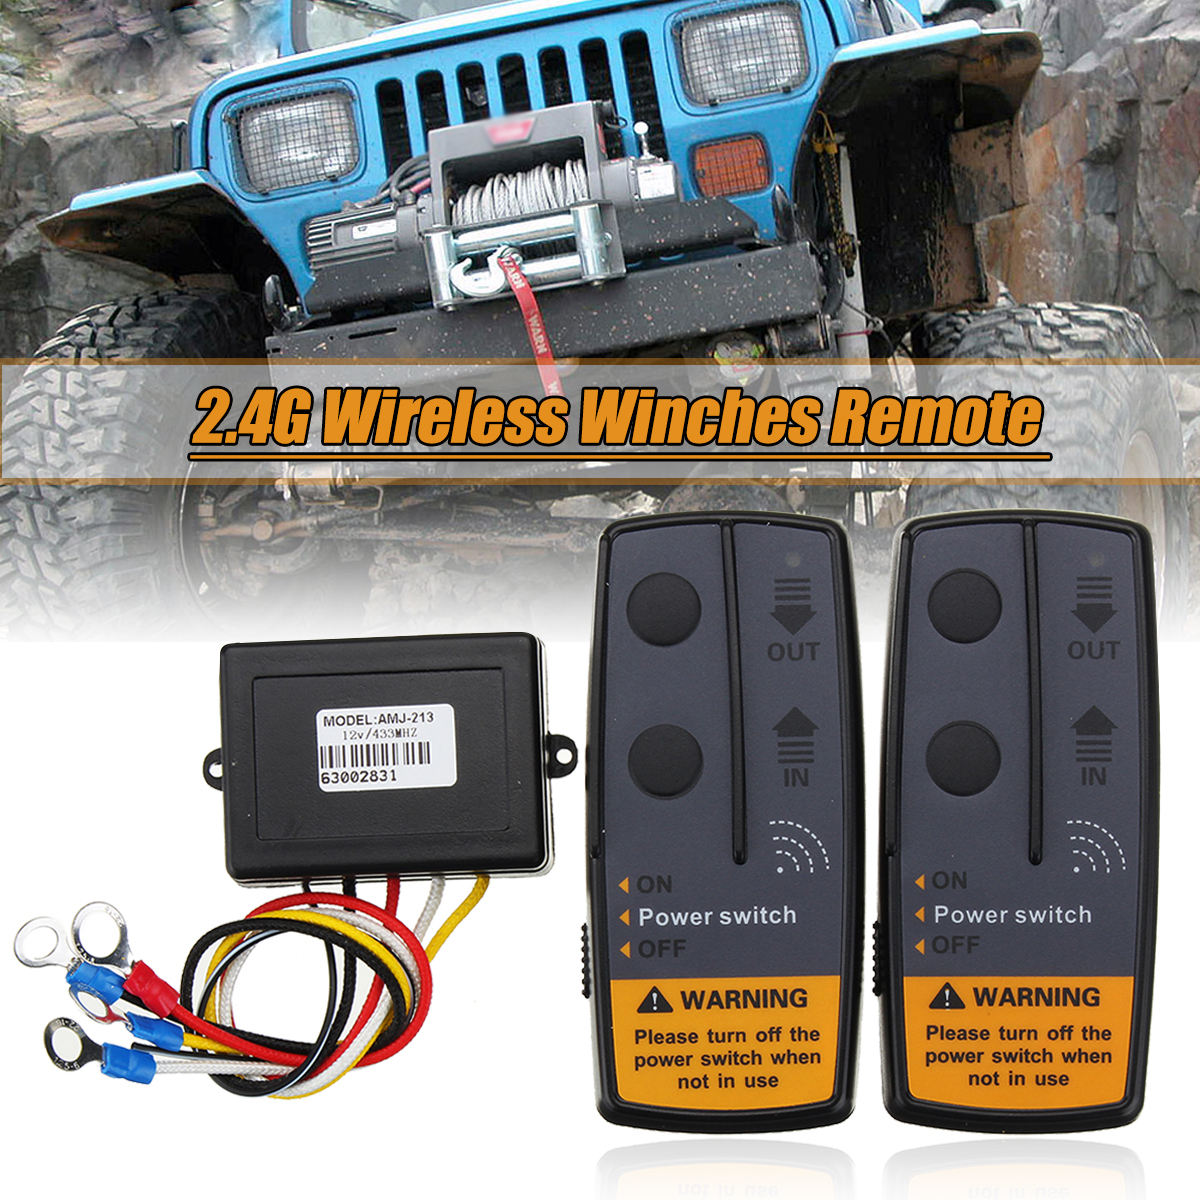 2.4G 12-24V Digital Wireless Winches Remote Control Recovery Kit For Jeep SUV Truck Car jinshengda remote control 24v universal wireless remote control kit handset for truck jeep atv suv winch warn ramsey